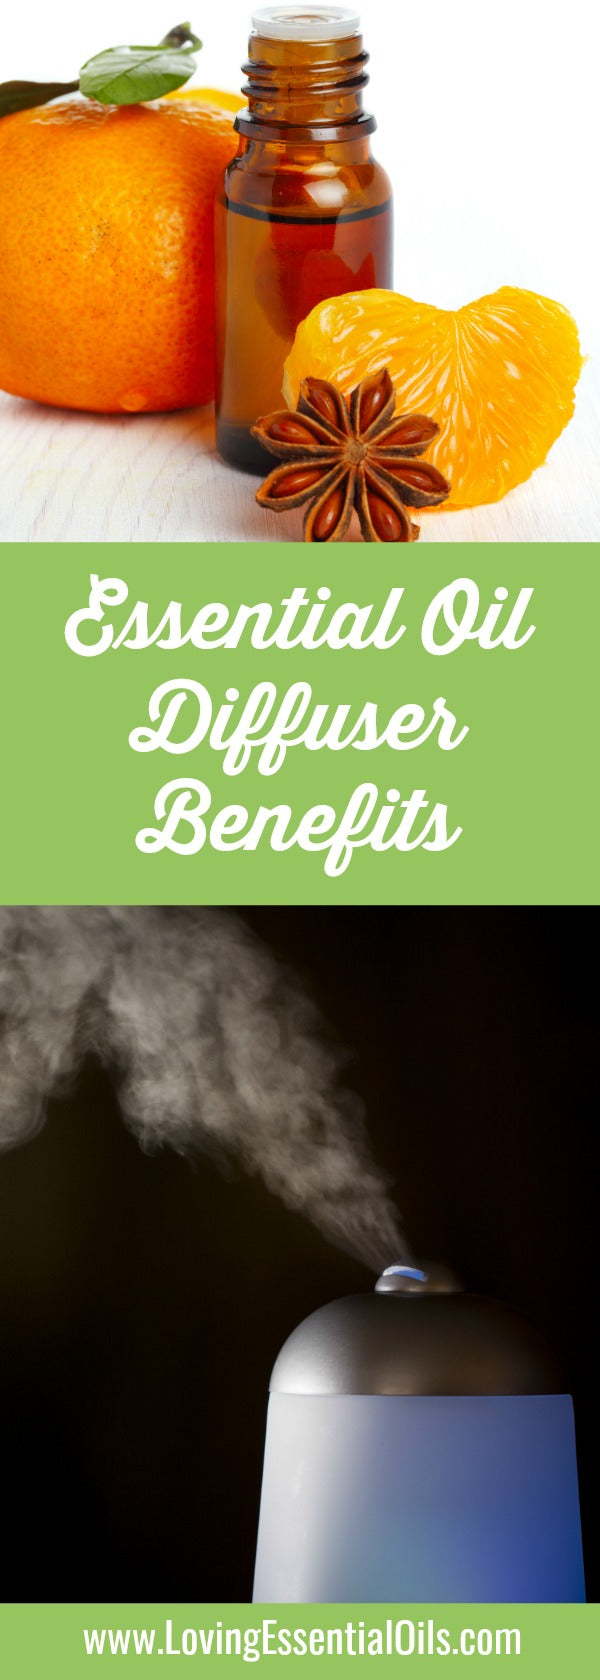 12 Essential Oils Diffuser Benefits